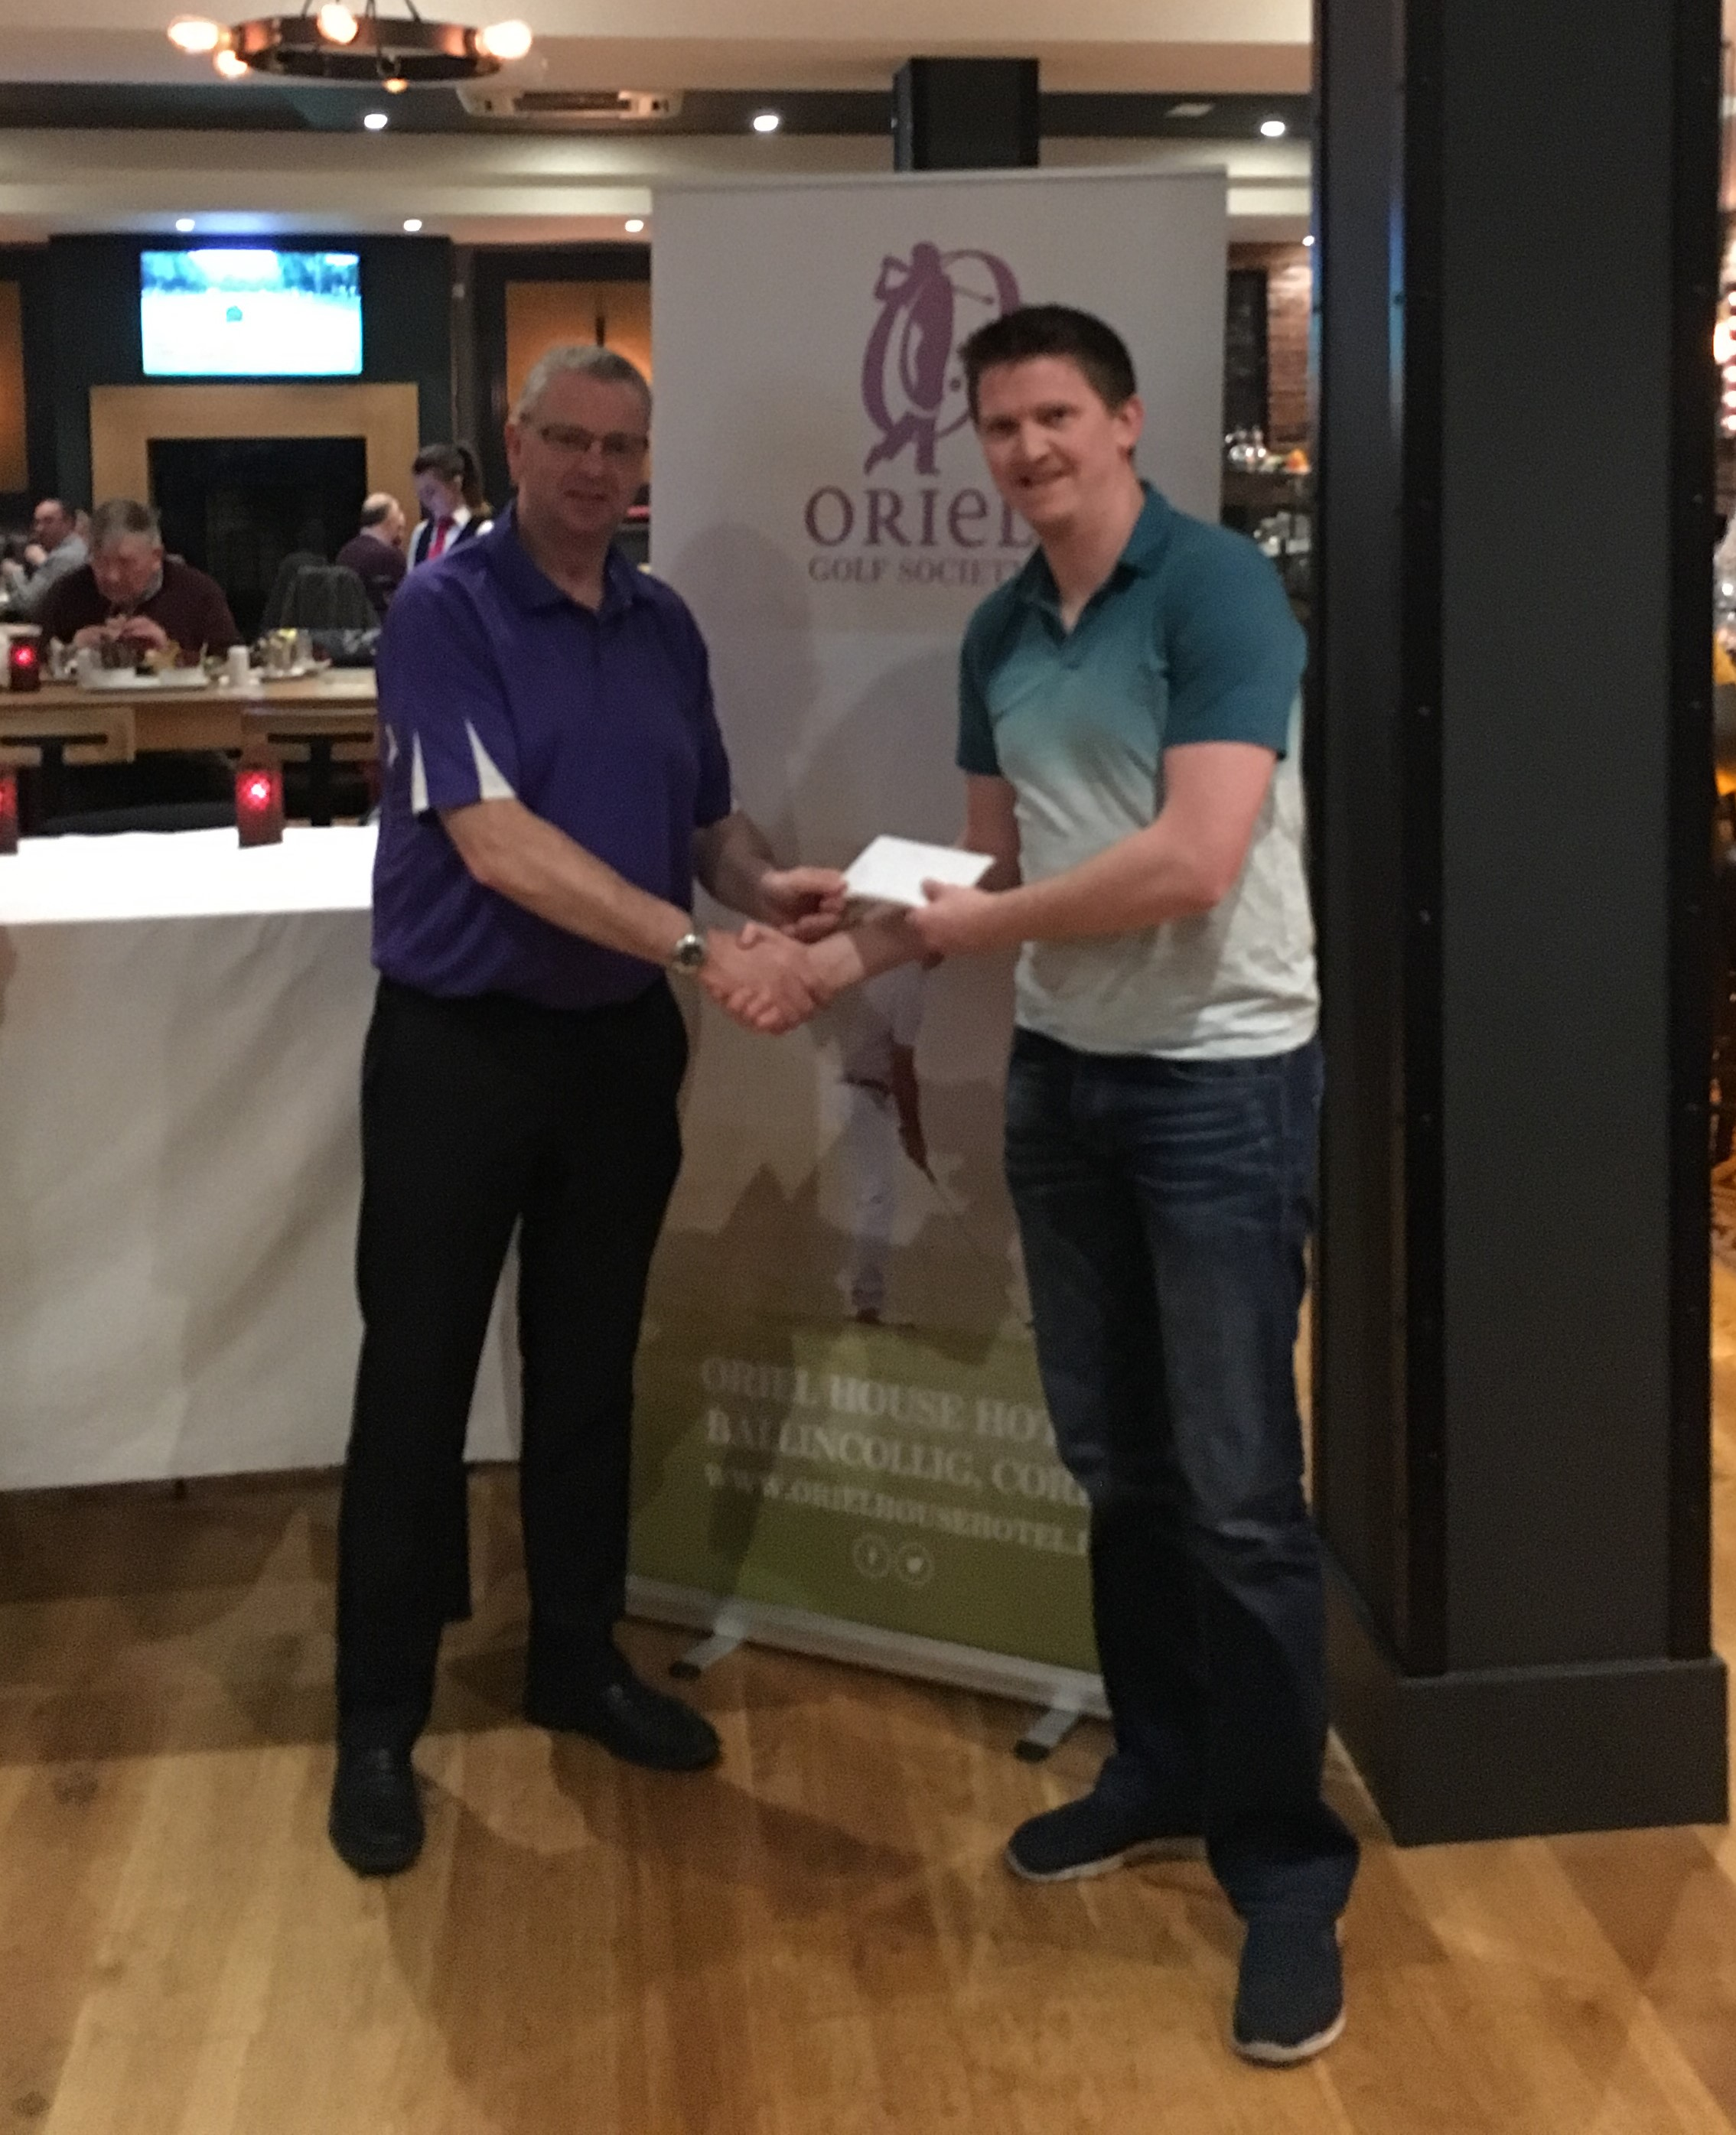 Tom Butler Captain presenting David Casey with 2nd Prize following The Oriel House Golf Society to Macroom Golf Club